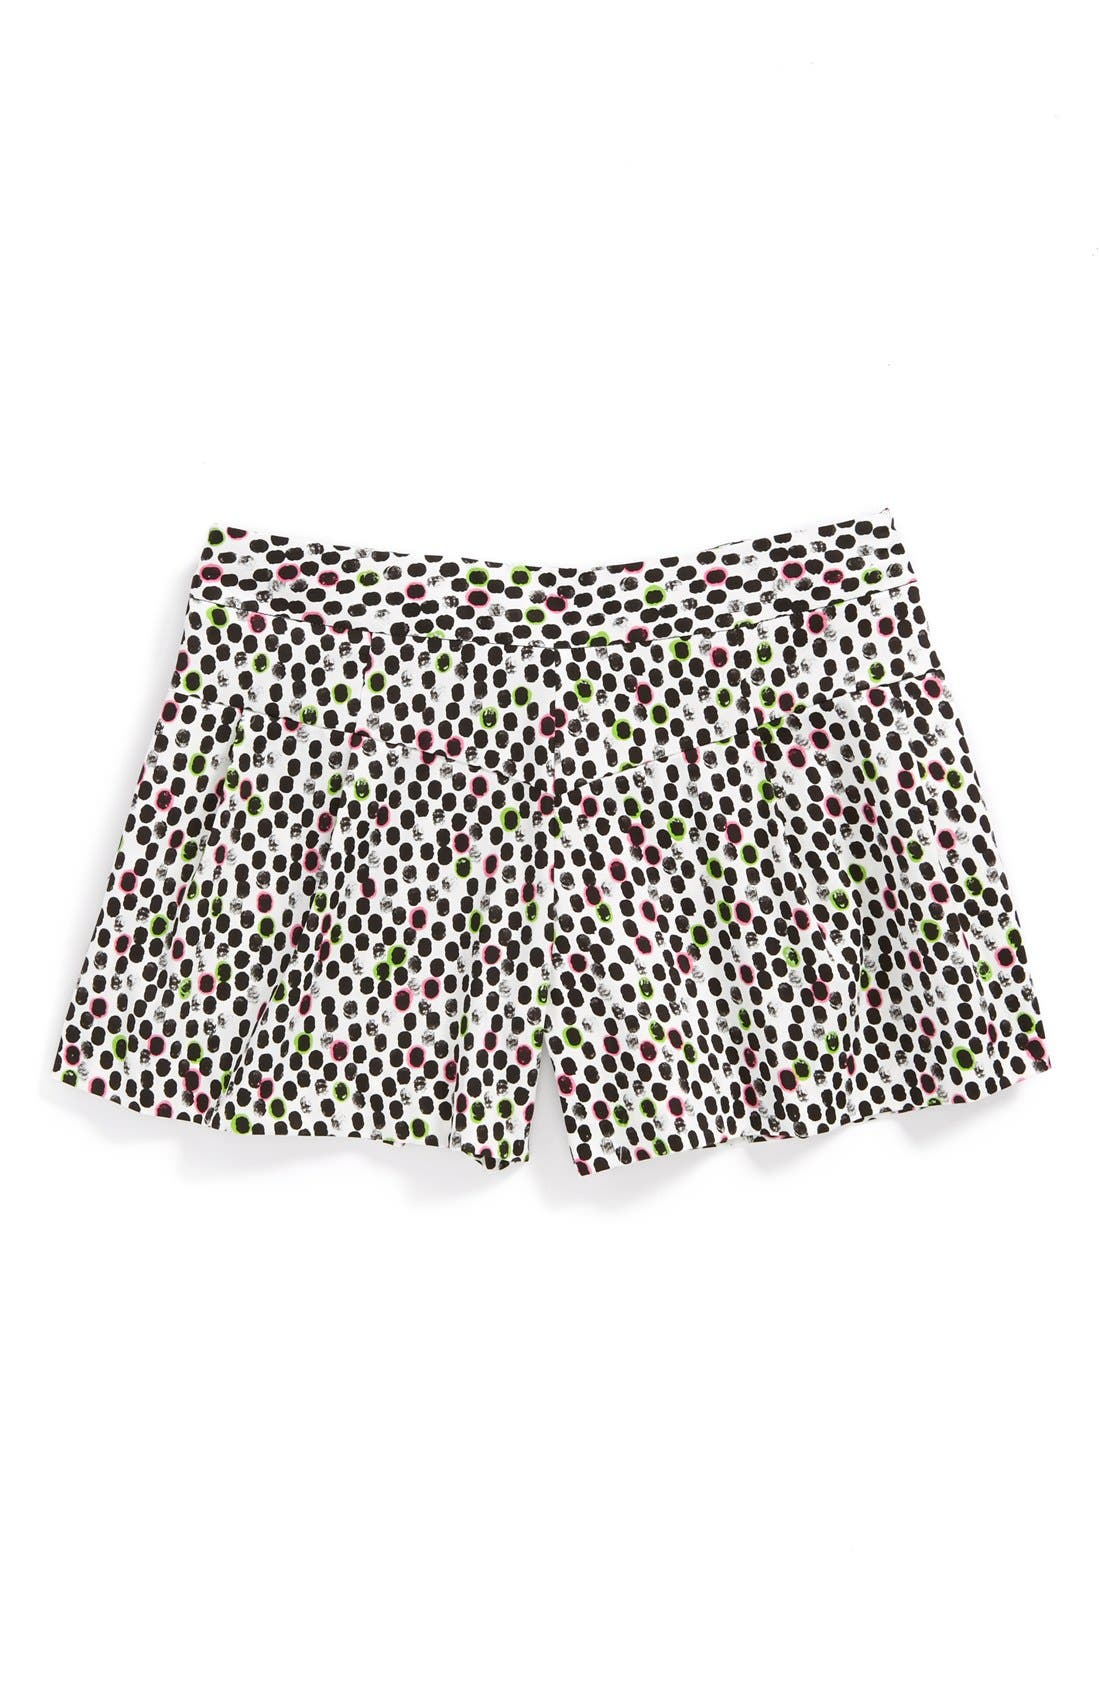 Alternate Image 1 Selected - Milly Minis 'Ocelot' Shorts (Big Girls)